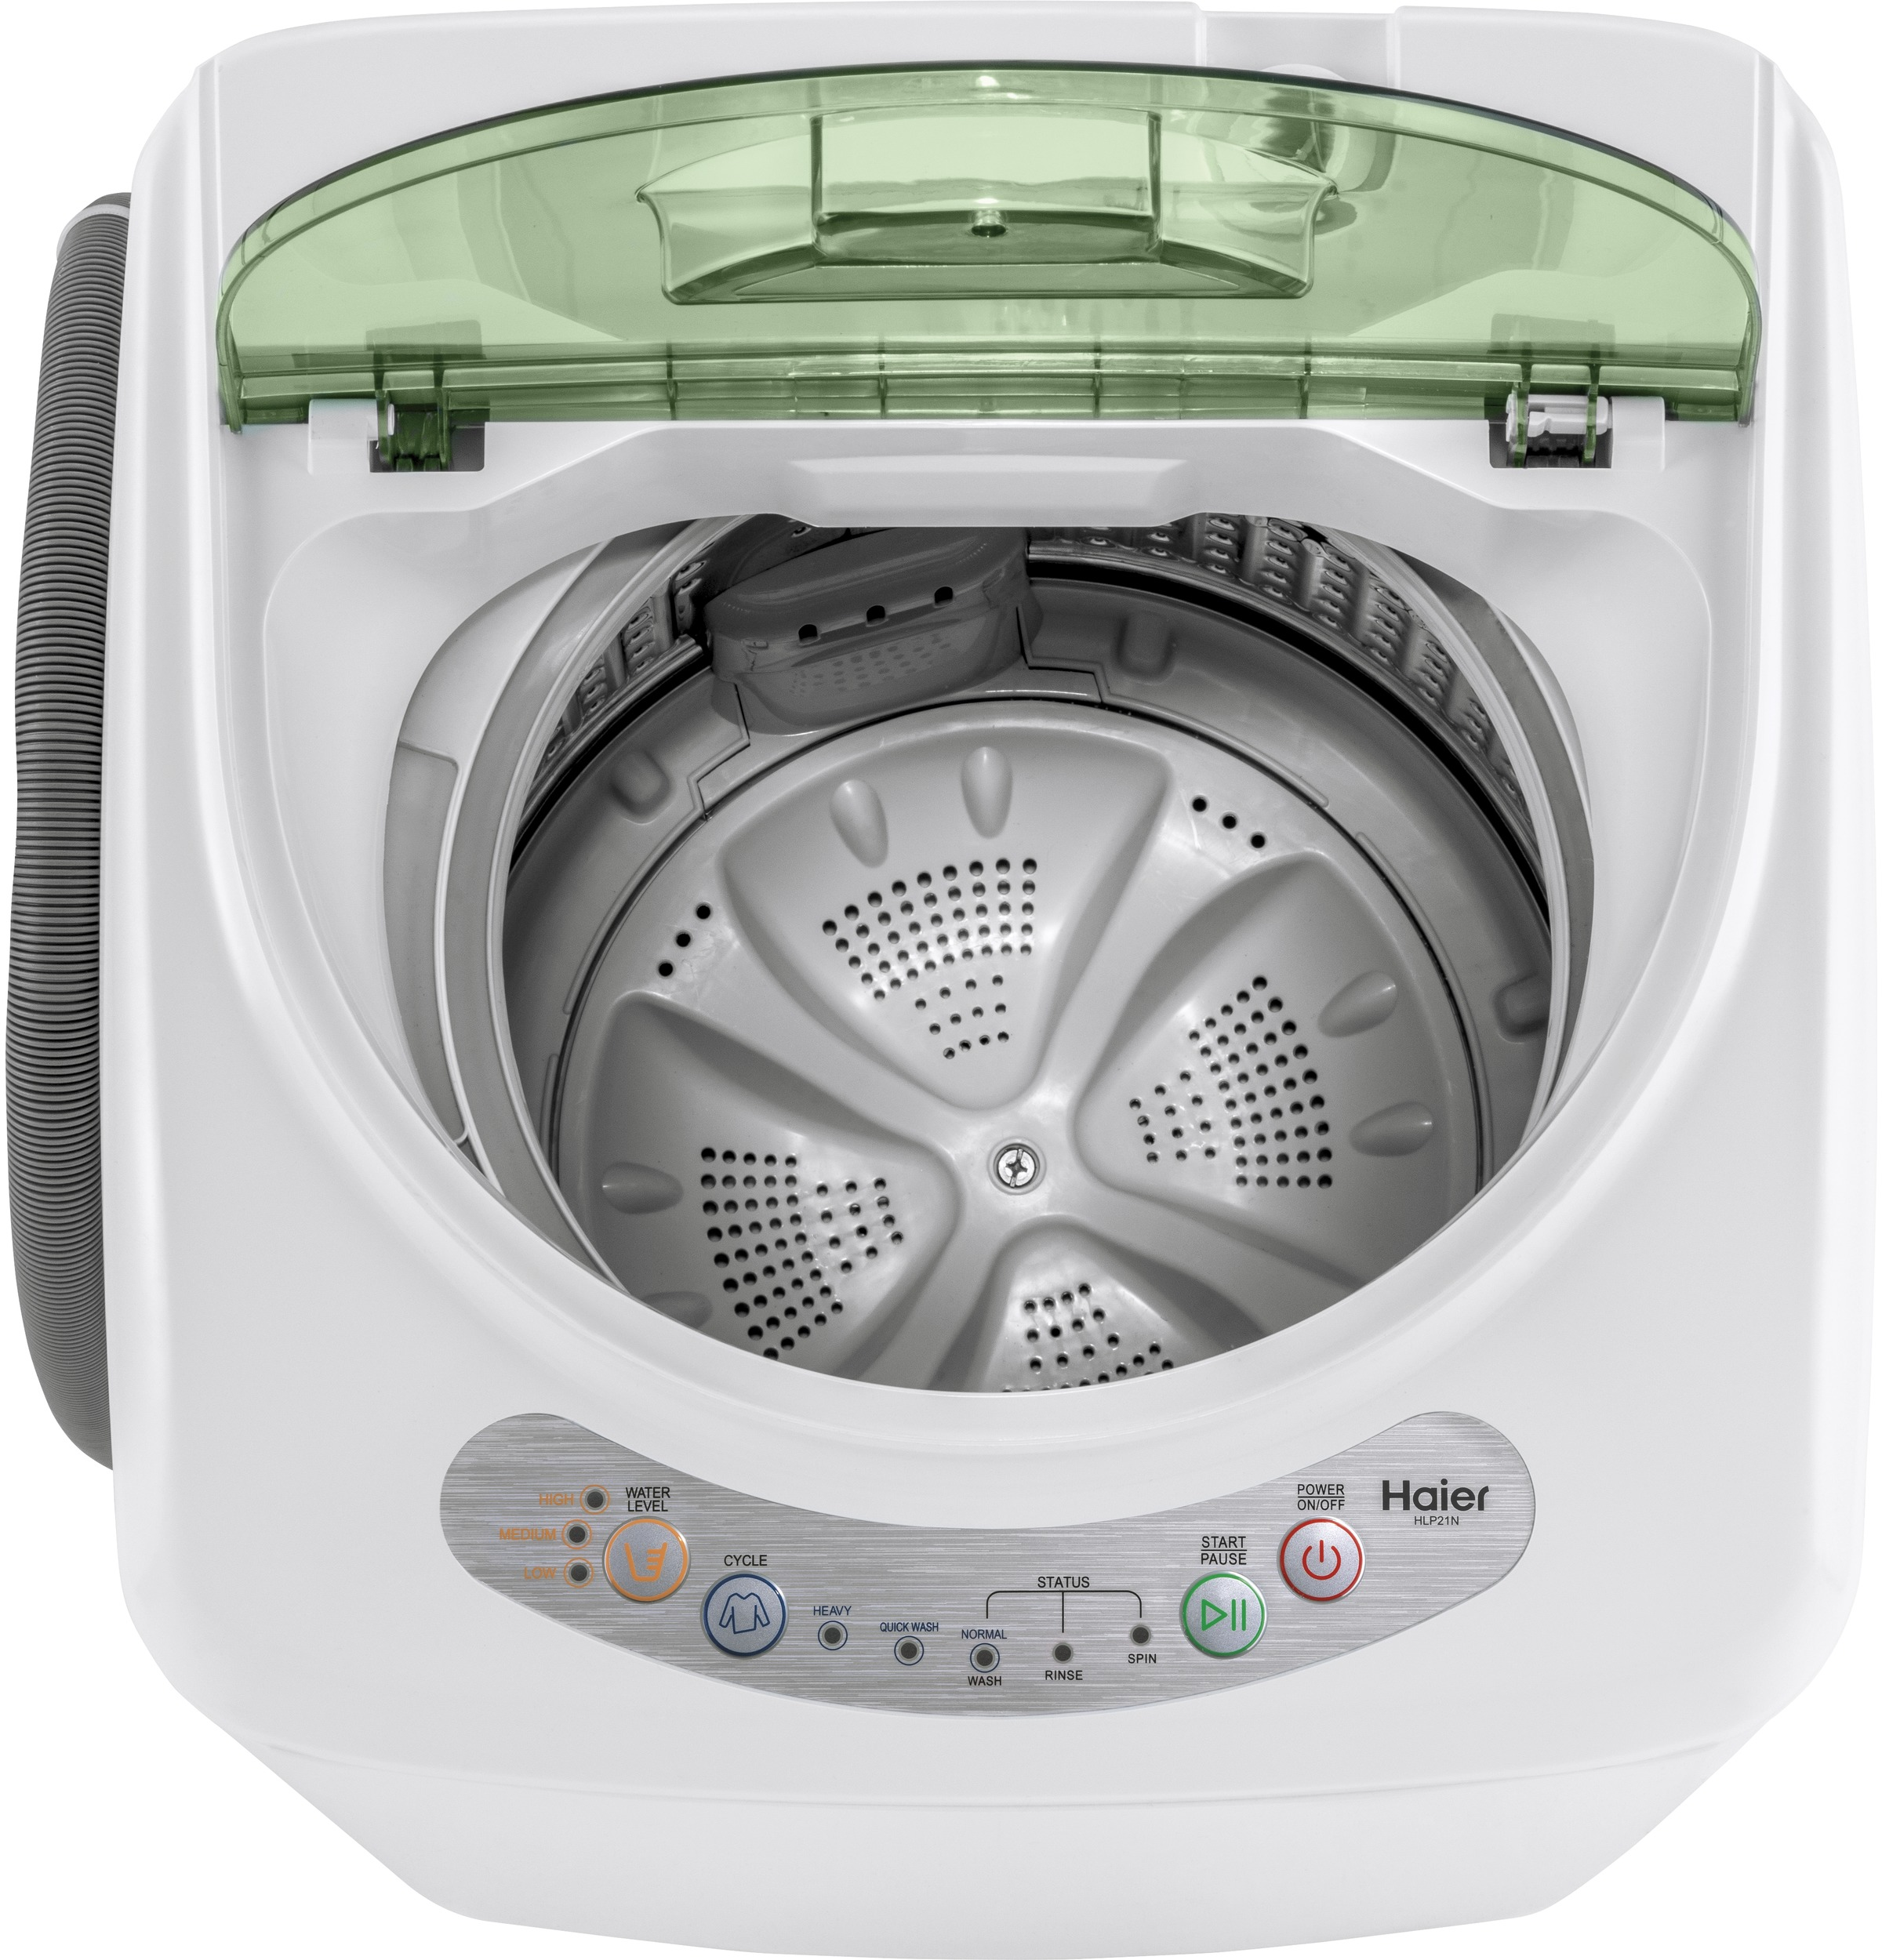 HLP21N -1.0 Cu. Ft. Portable Washer | Haier Appliances on